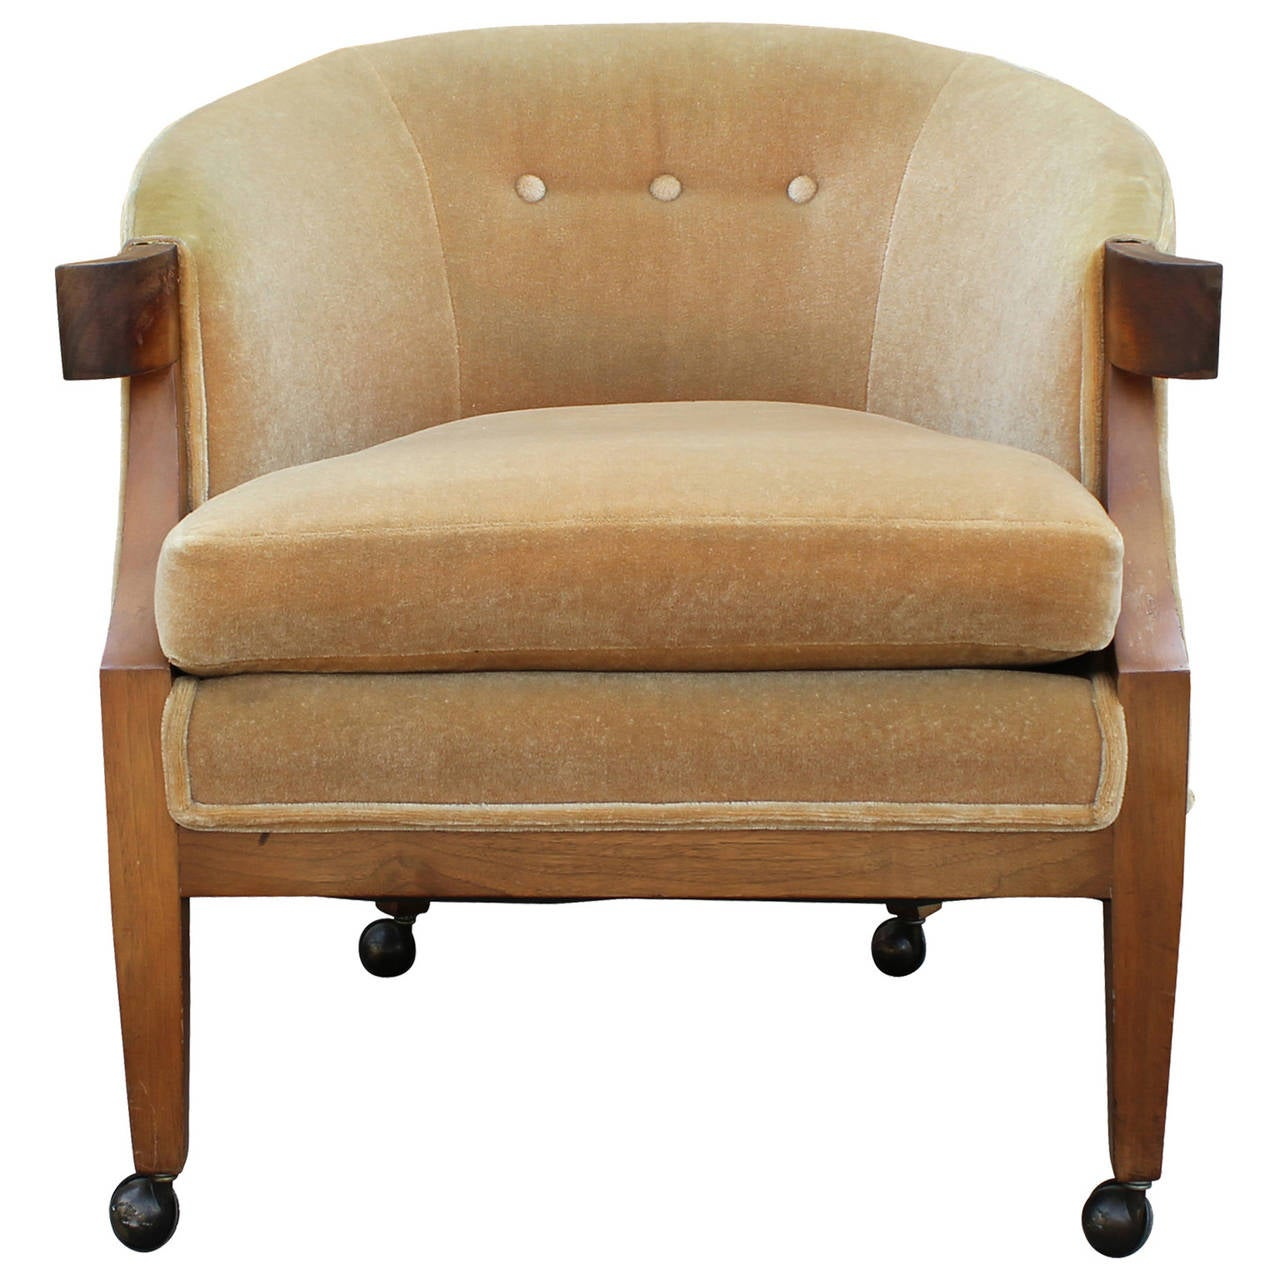 barrel back chair l hitchcock chairs elegant hollywood regency gold mohair by